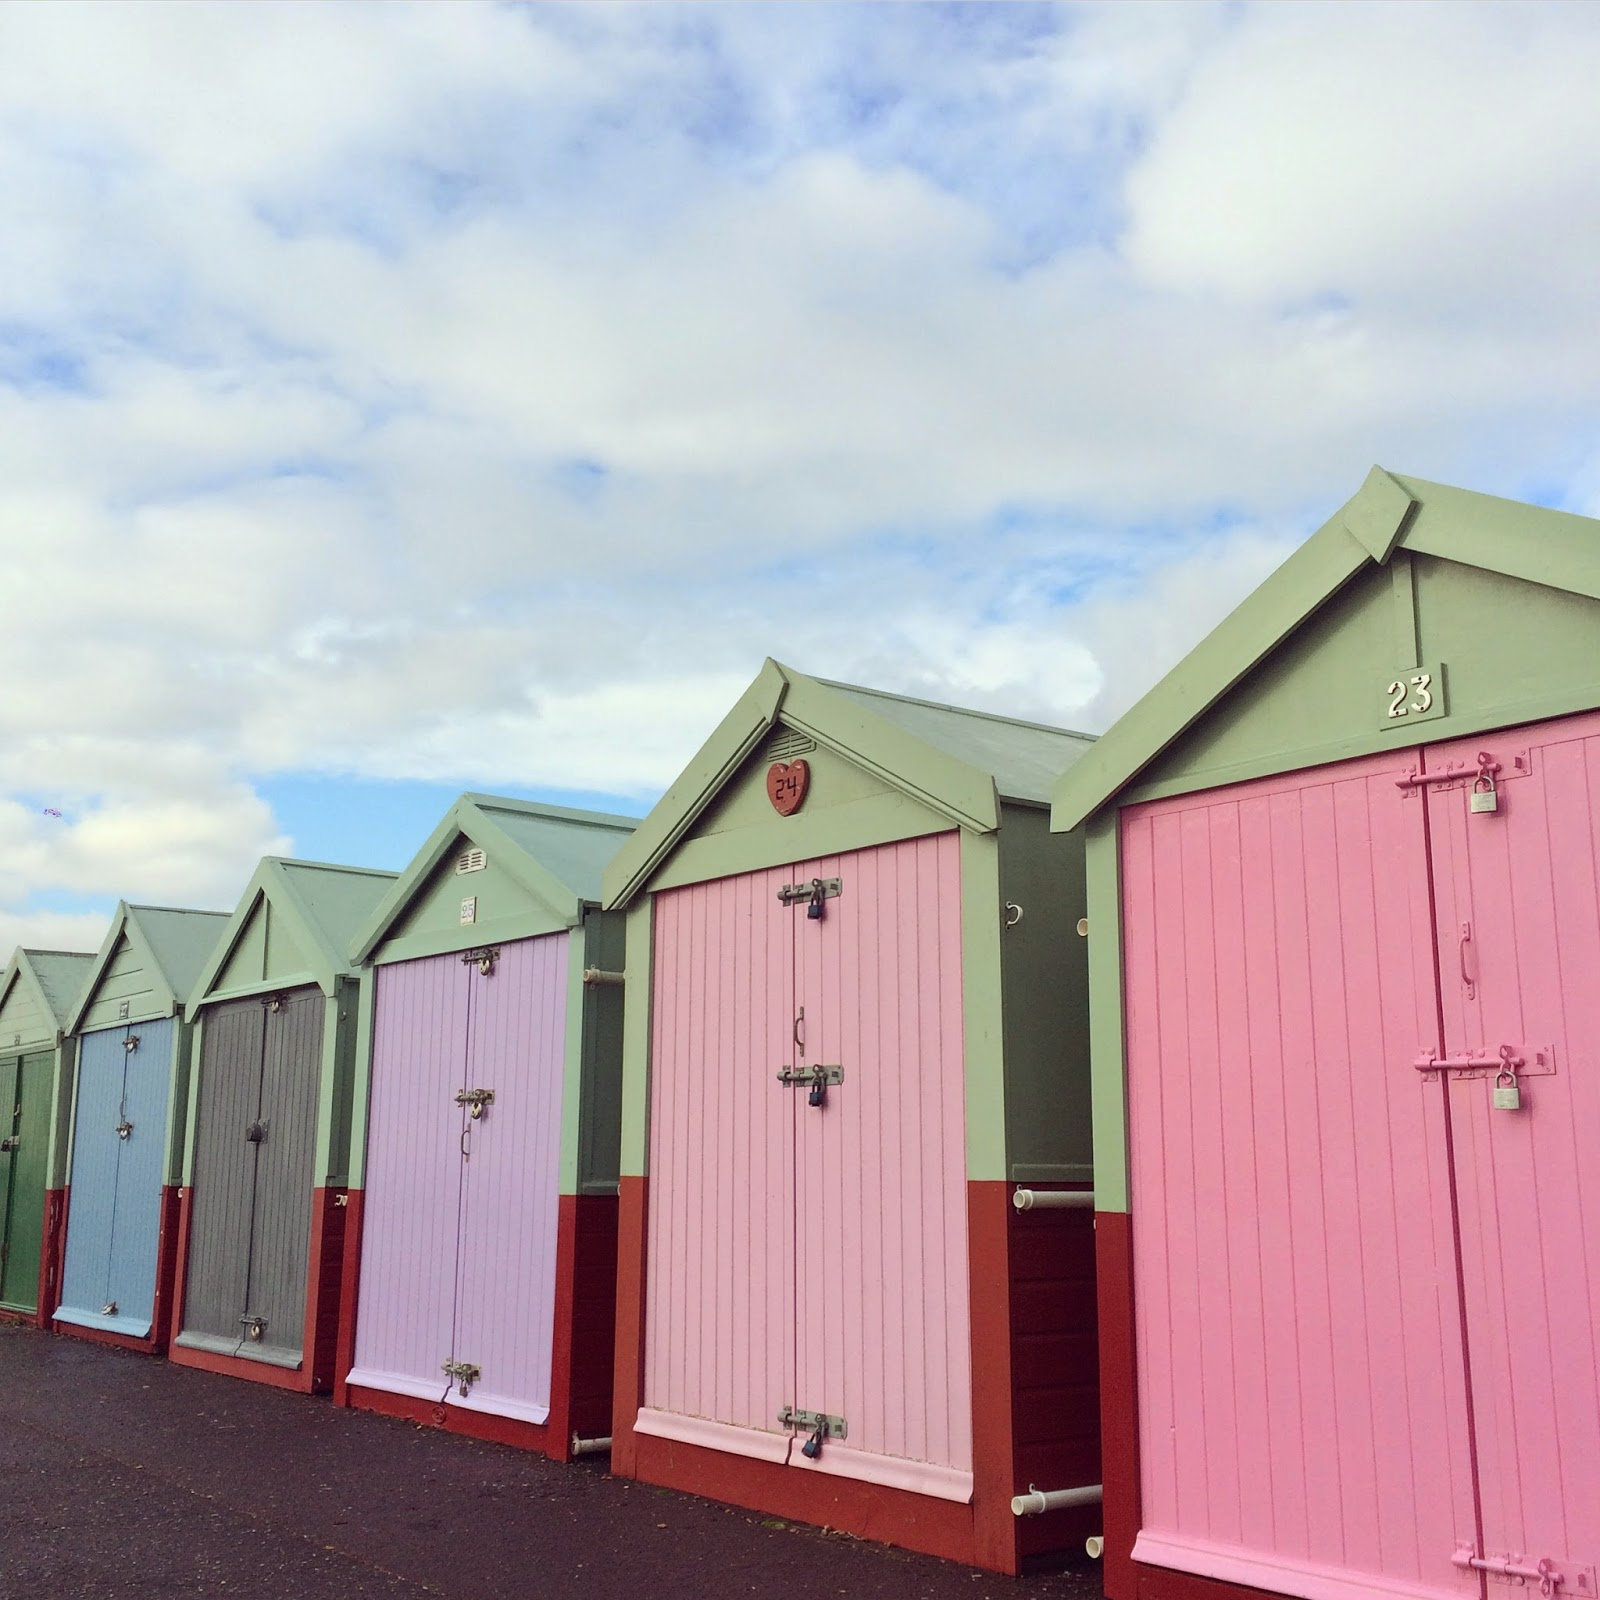 A Day Out In Brighton Pink Beach Huts Skies And An Amazing Roast